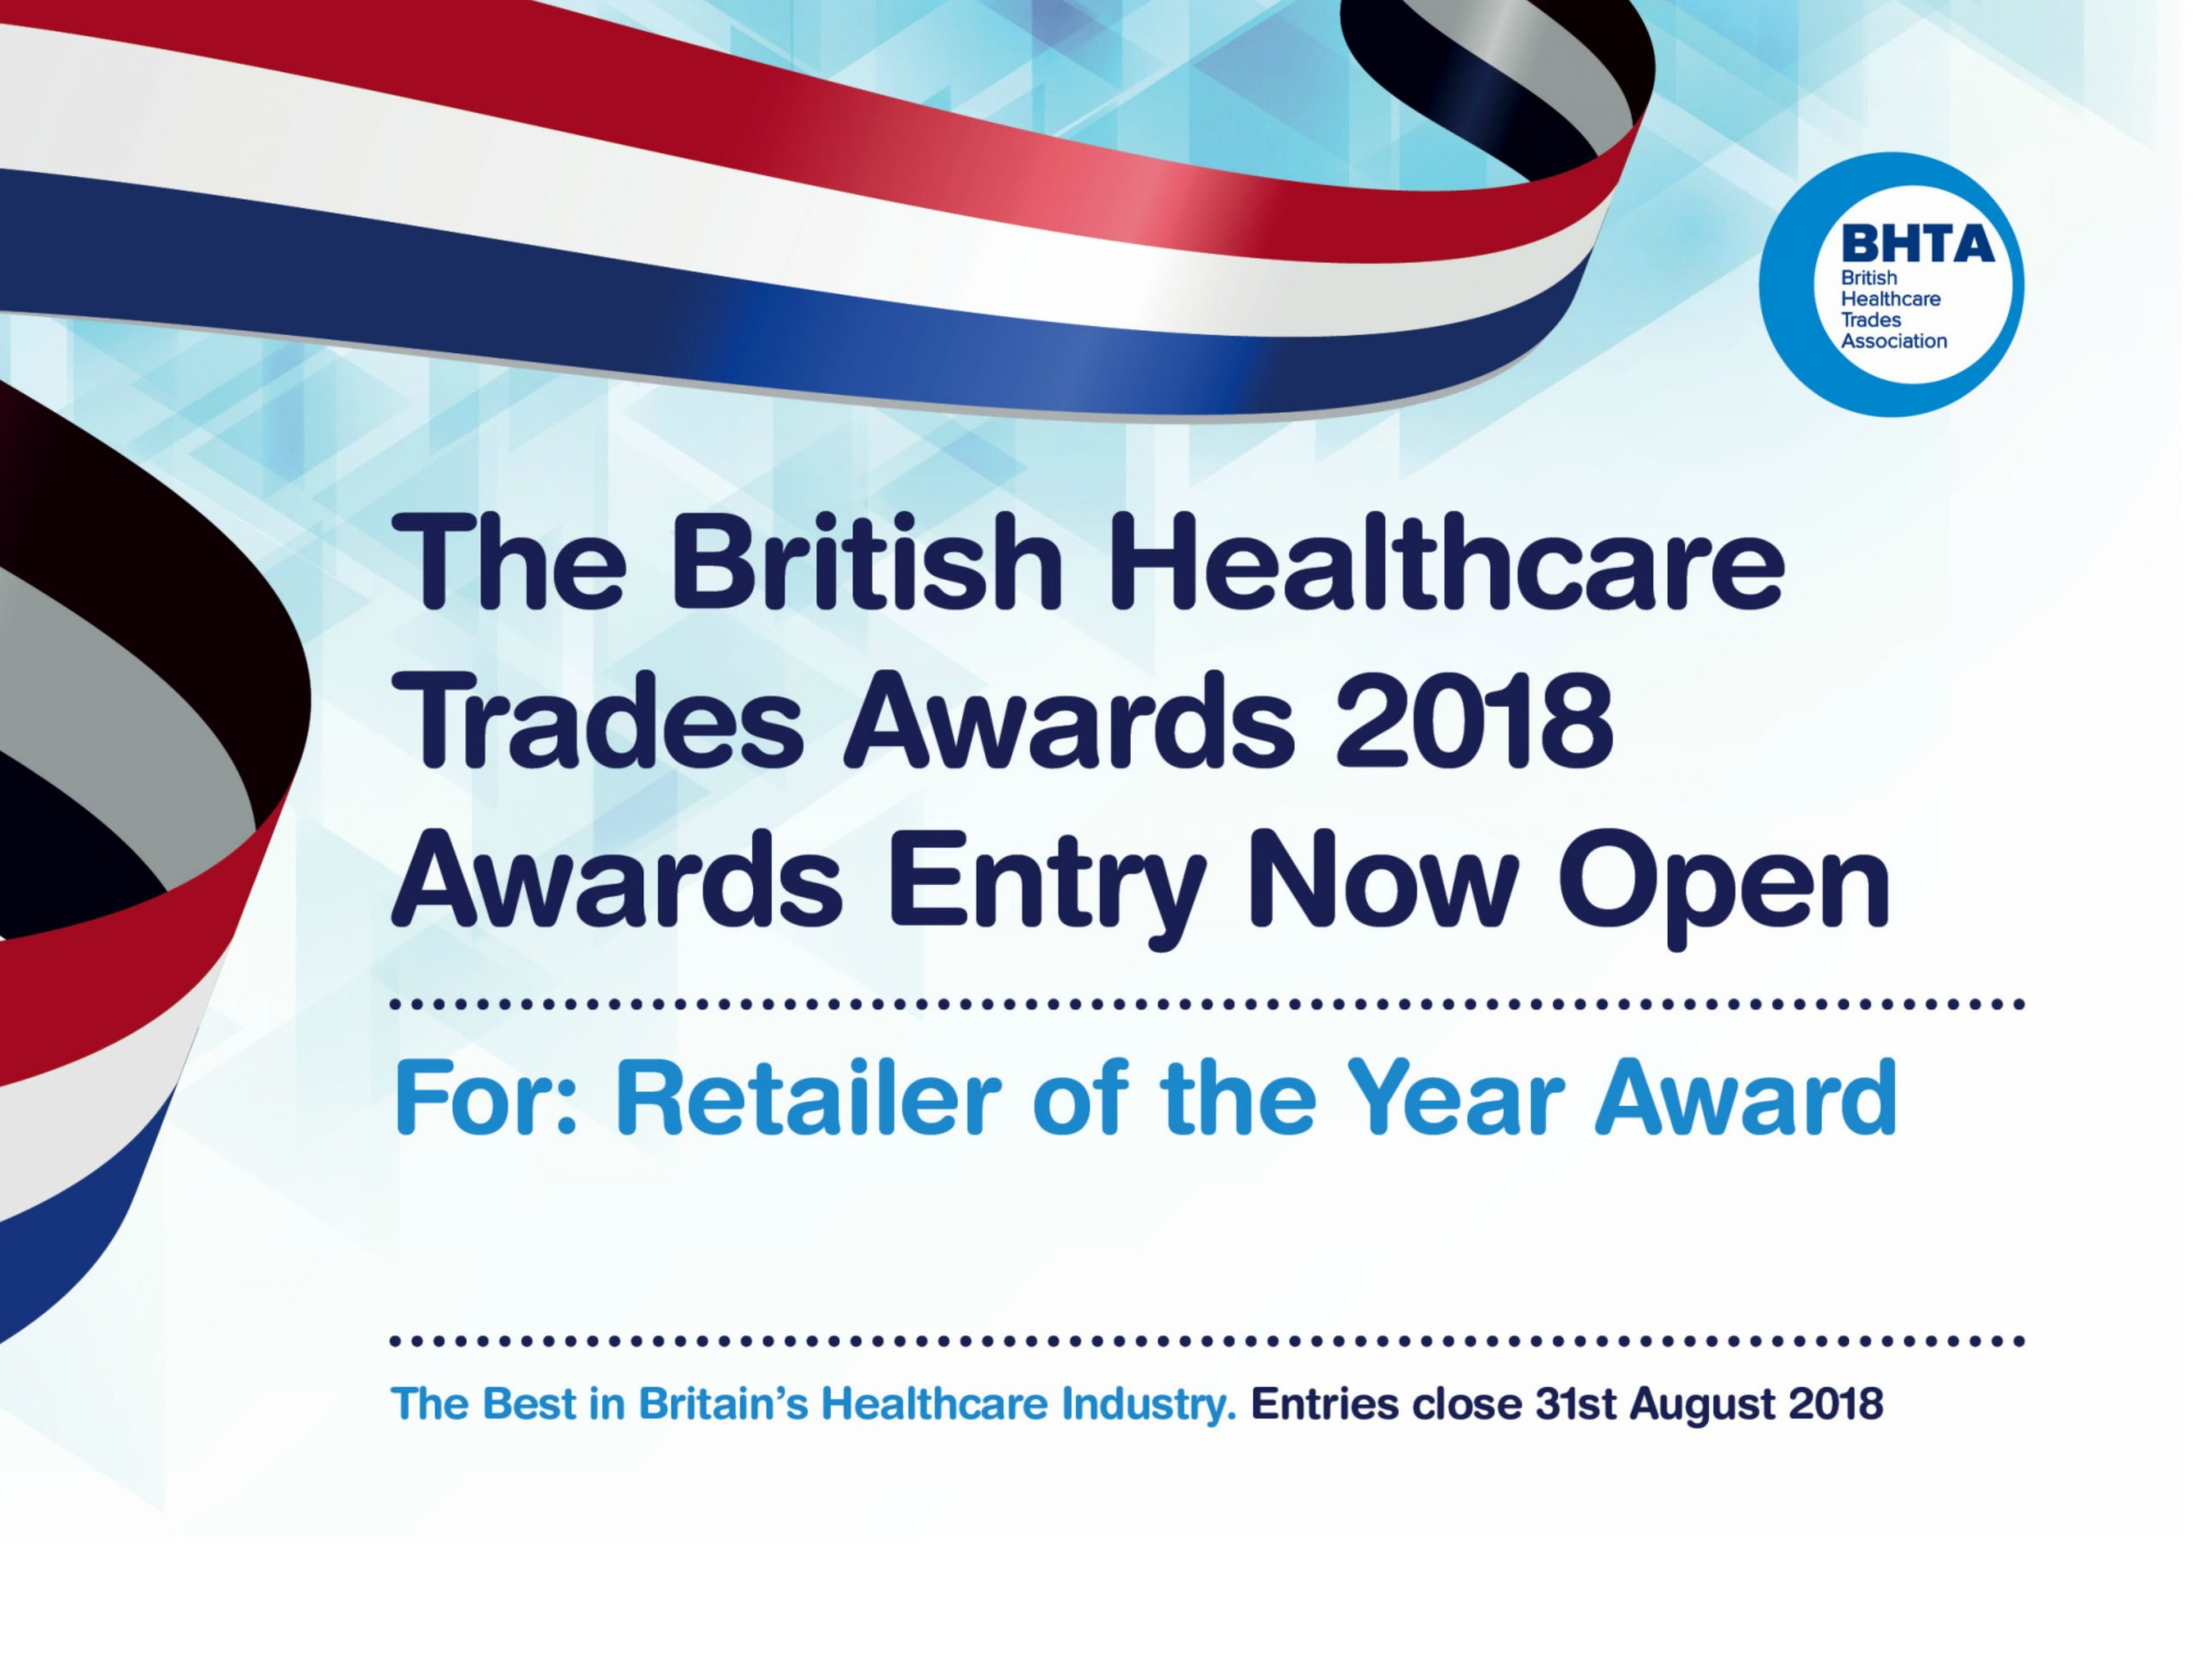 BHTA Retailer of the Year – Calling Healthcare Professionals to Nominate